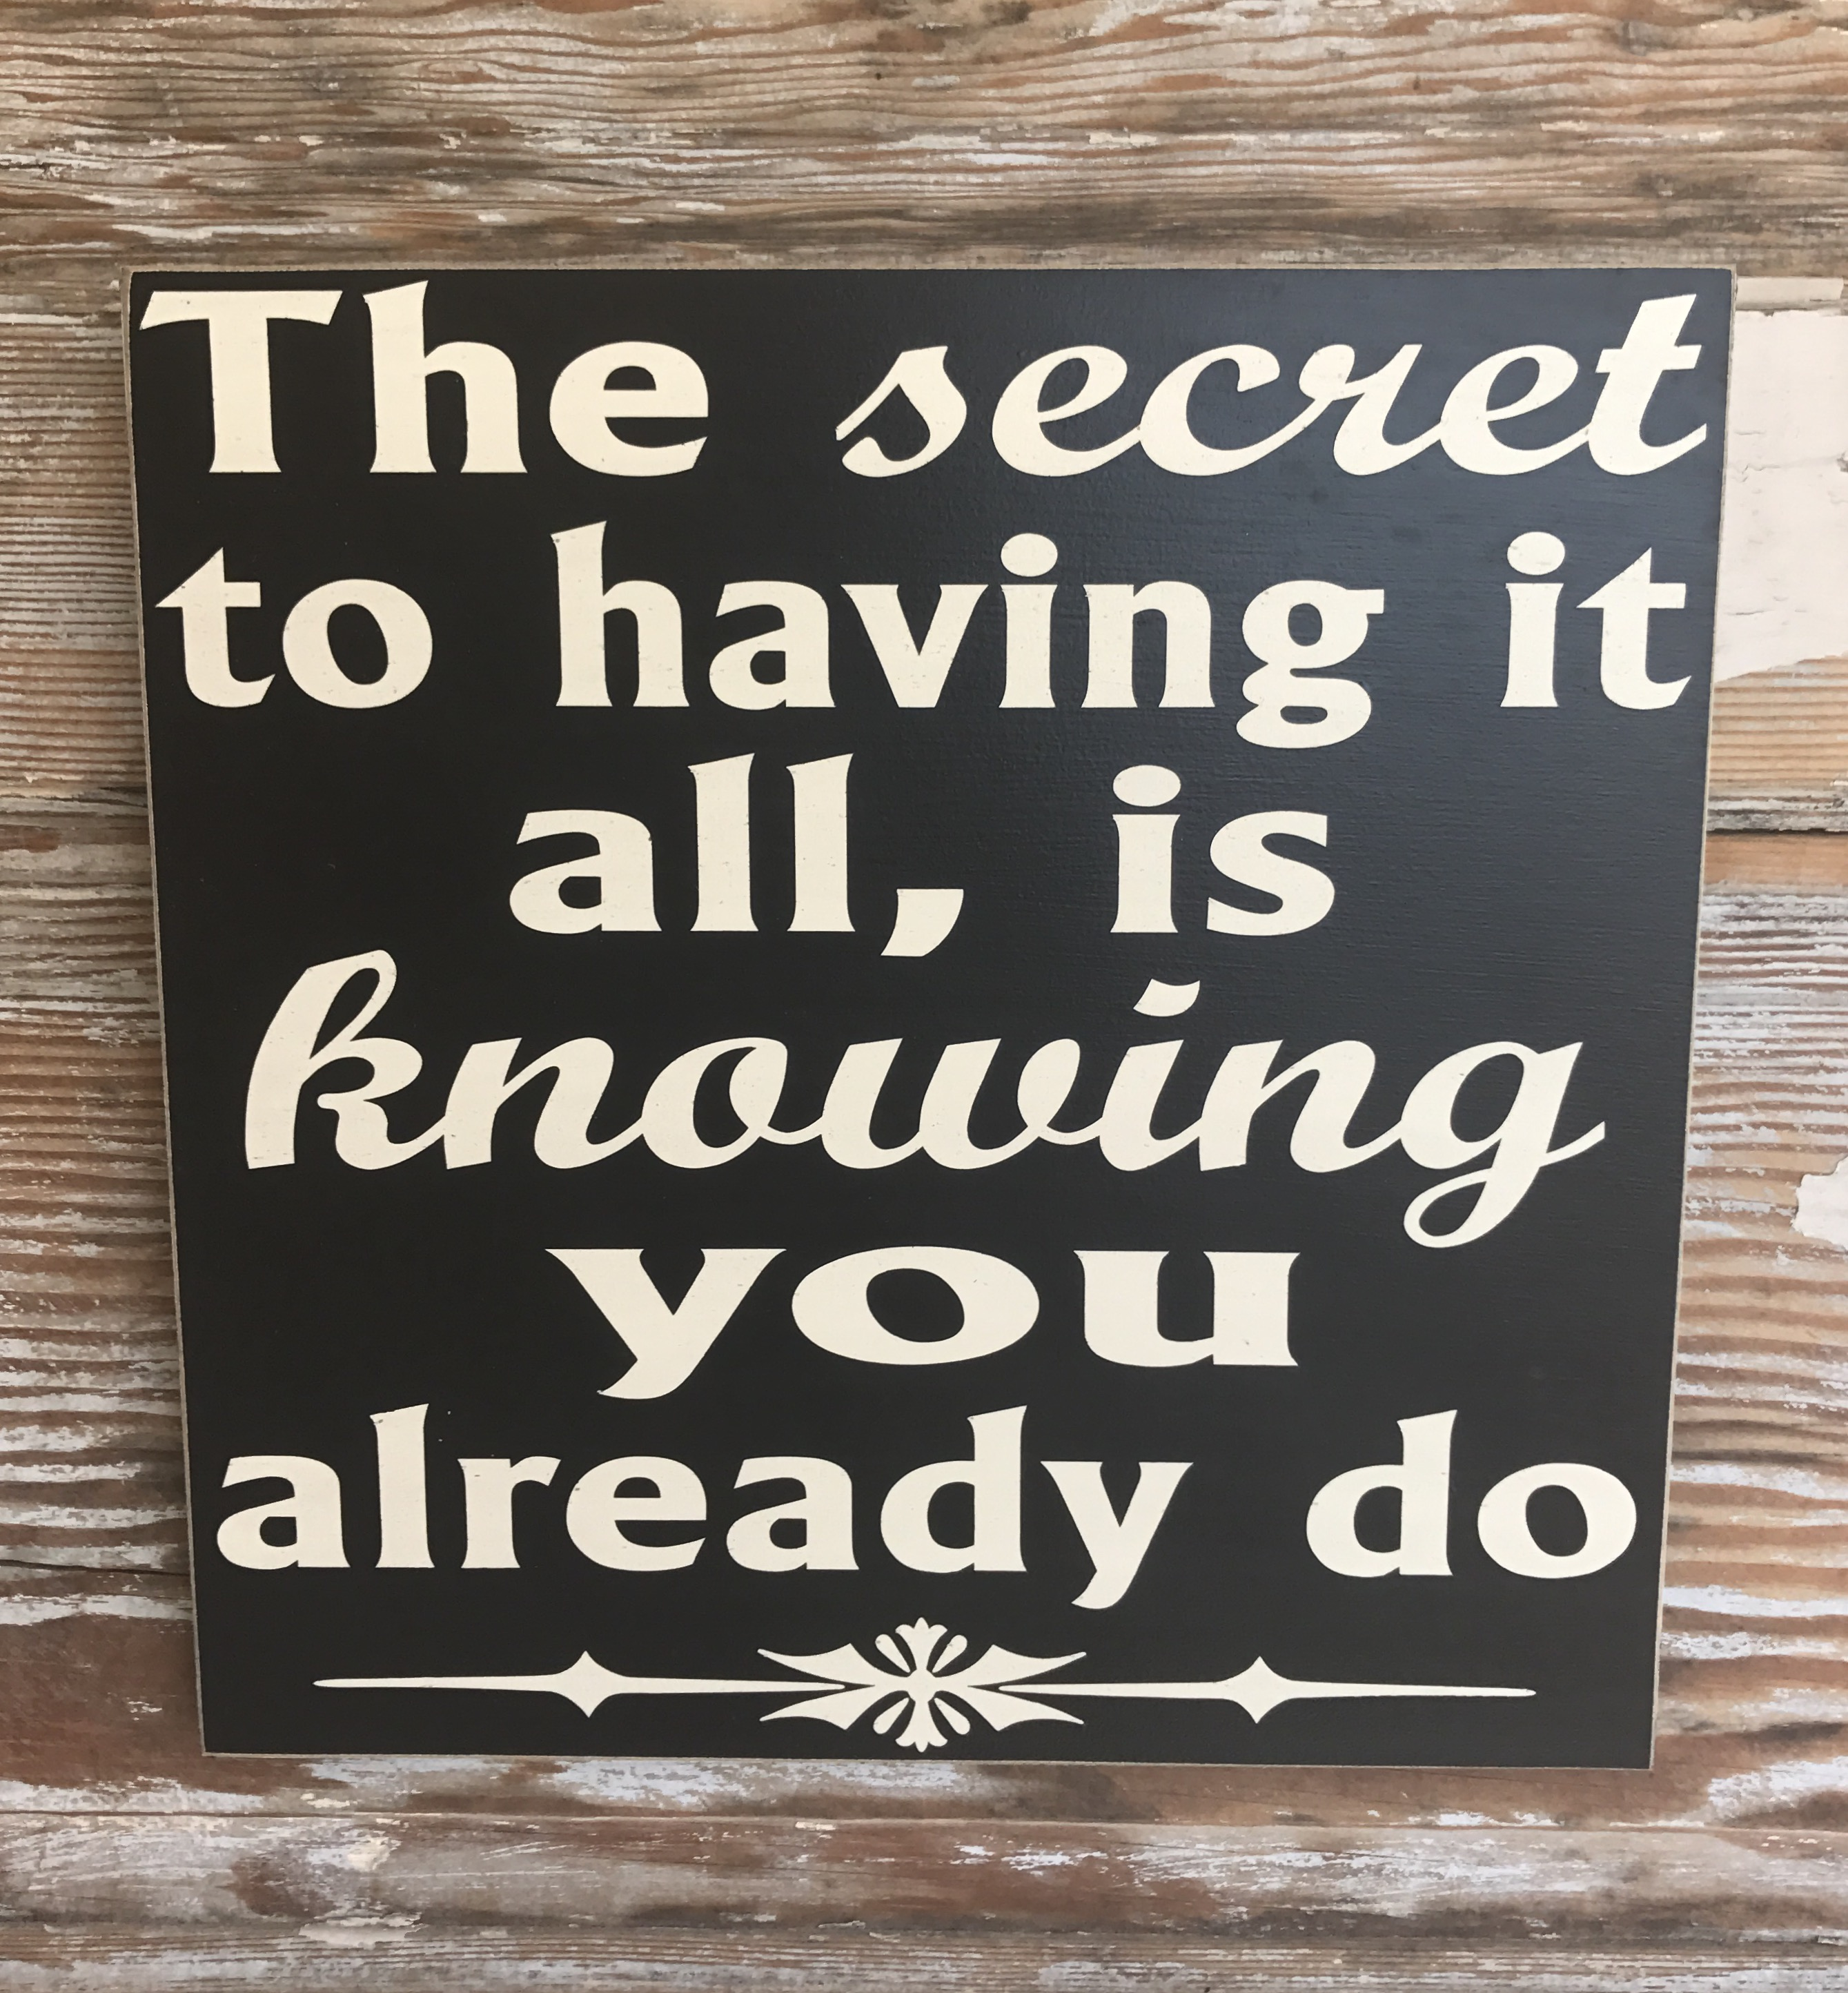 The Secret To Having It All, Is Knowing You Already Do.  Wood Sign